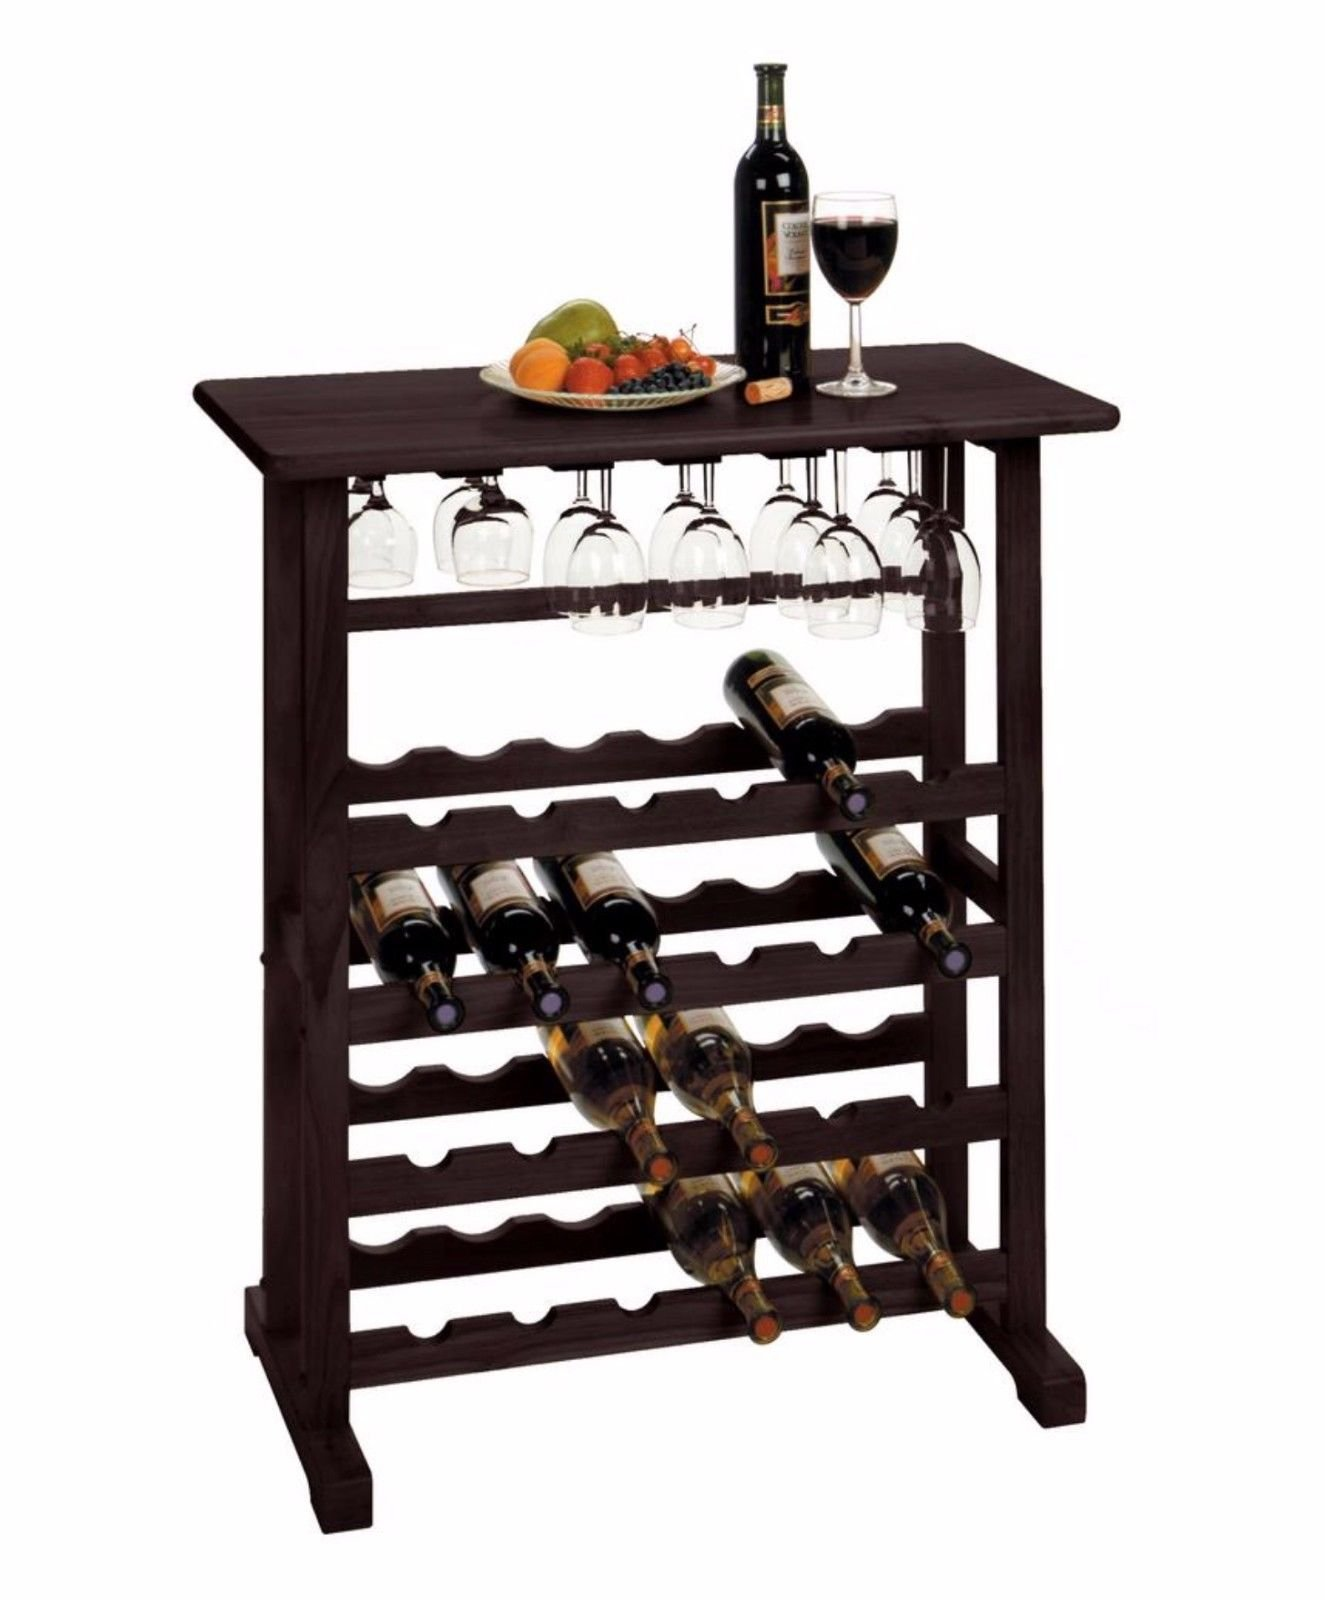 Wood Wine Rack 24 Bottle Glass Hanger Espresso Holder Storage Shelf Display by RX-789 (Image #2)